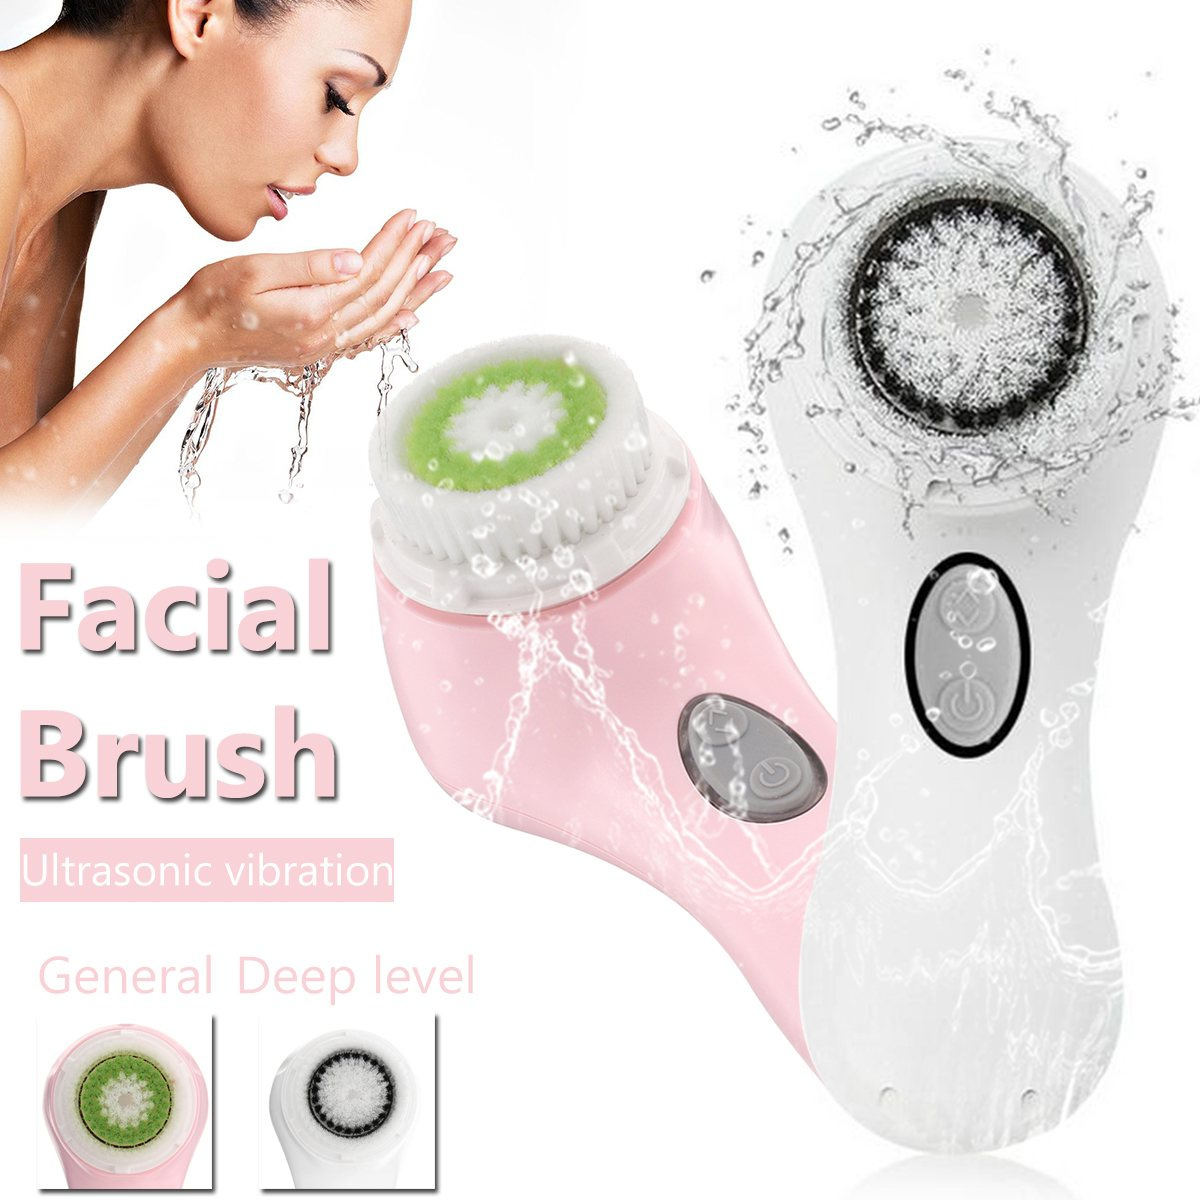 Ultrasonic Facial Cleansing Brush Electric Face Deep Pores Cleaning Massager Exfoliator Scrubber Skin Care Tool USB Rechargeable electric face brush women silicone facial cleansing massager brush skin care cleanser dirt remove exfoliator cleaning tool